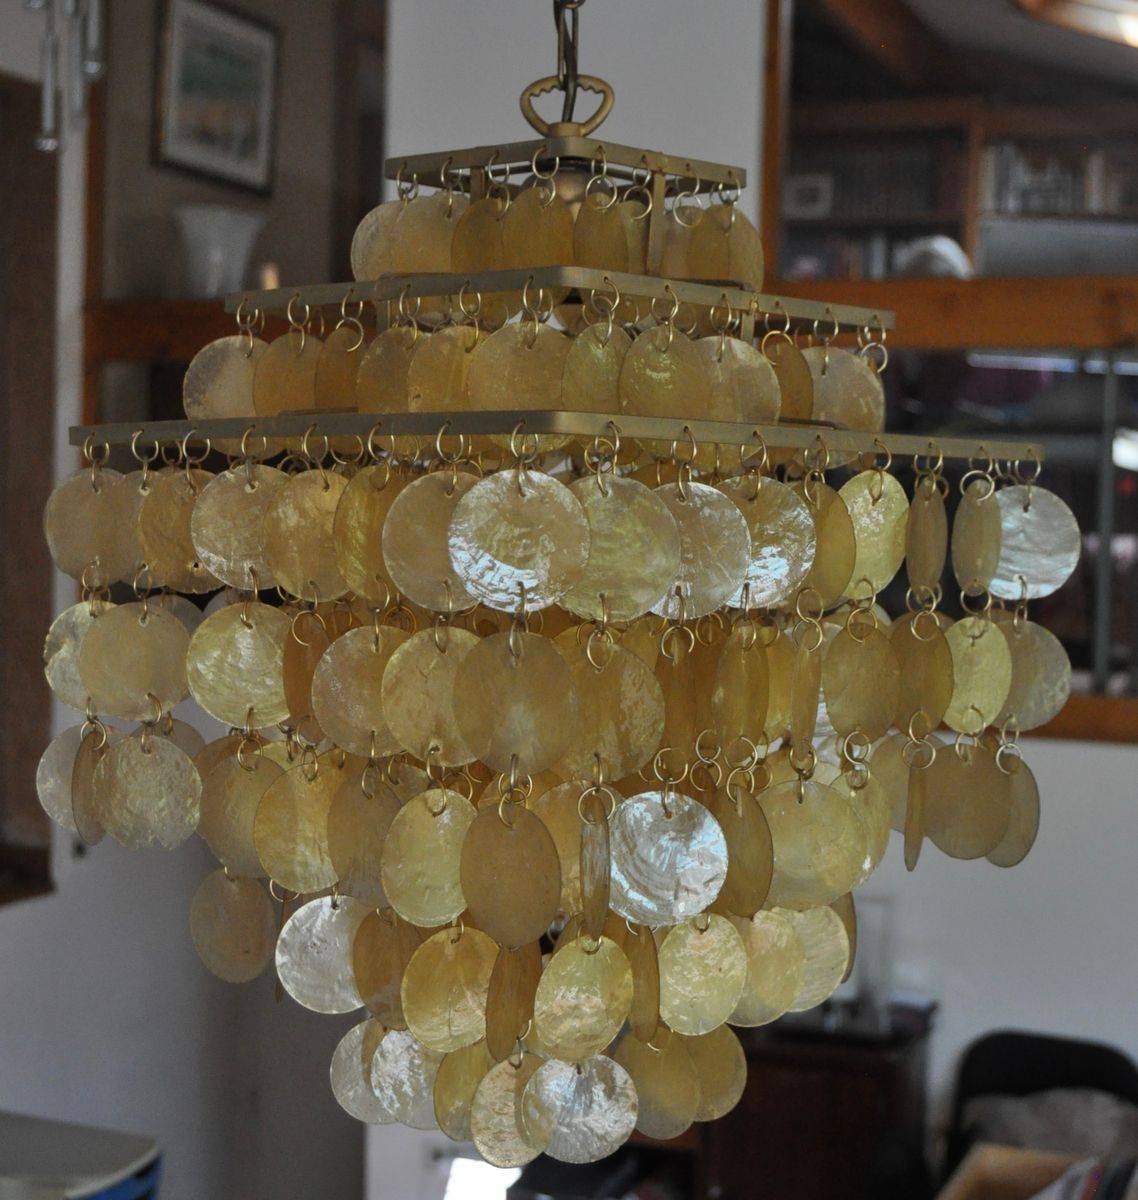 Exceptional Mid Century Mother Of Pearl Chandelier By Arturo Pani For Verner Panton,  1960s For Sale At Pamono